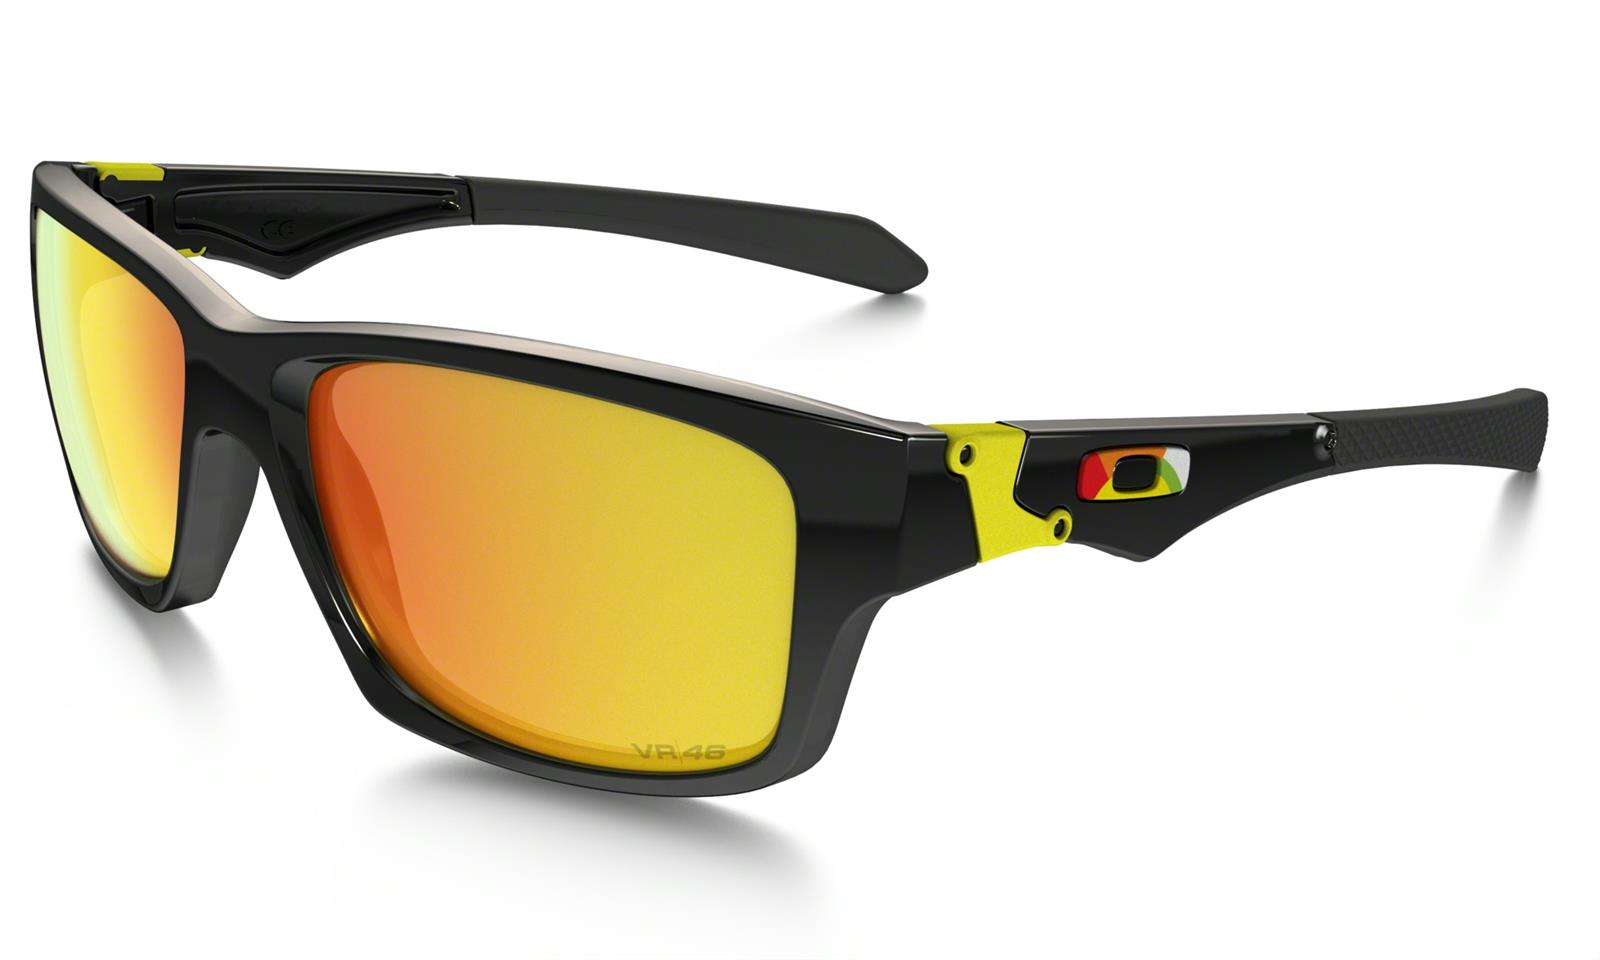 ab918665e1 Oakley Jupiter Squared Valentino Rossi Signature Series Sunglasses OO9135-11  - Free Shipping on Orders Over  99 at Summit Racing